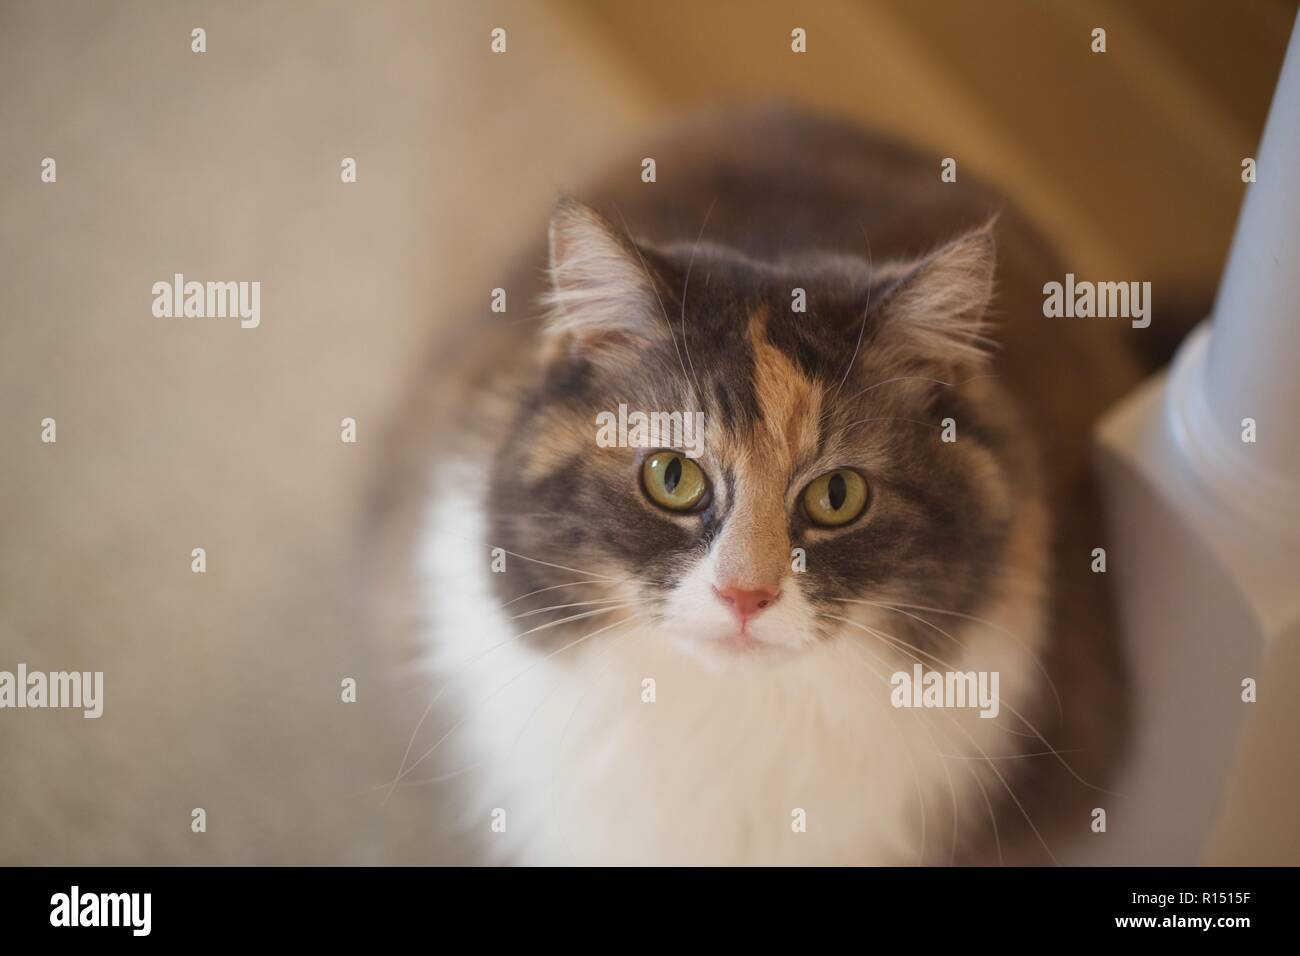 Dusky, Cat's Eyes Looking Into Camera Lens - Stock Image